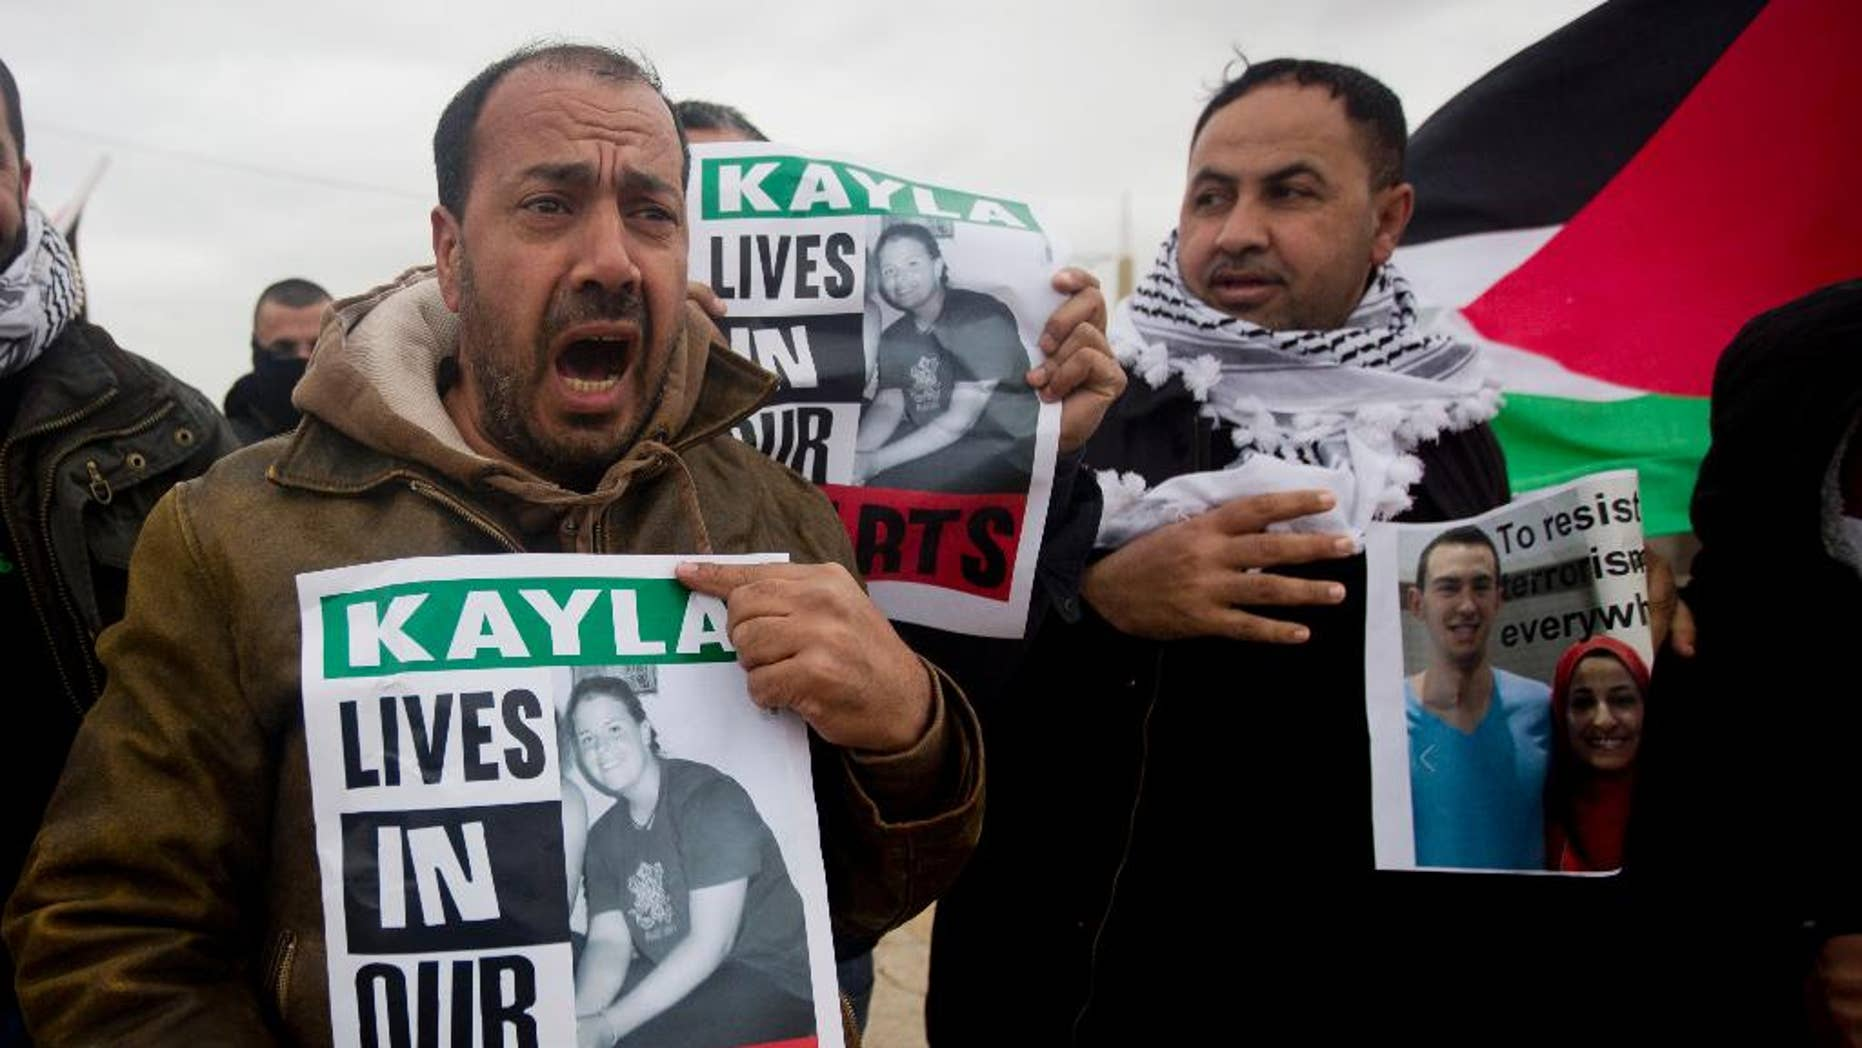 Palestinian demonstrators hold portraits of Kayla Mueller, a 26-year-old American who died while being held hostage by the Islamic State group, during a weekly demonstration against Israel's separation barrier in the West Bank village of Bilin near Ramallah, Friday, Feb. 13, 2015. Her death was confirmed this week by her family and the U.S. government, but how she died remained unclear. (AP Photo/Majdi Mohammed)